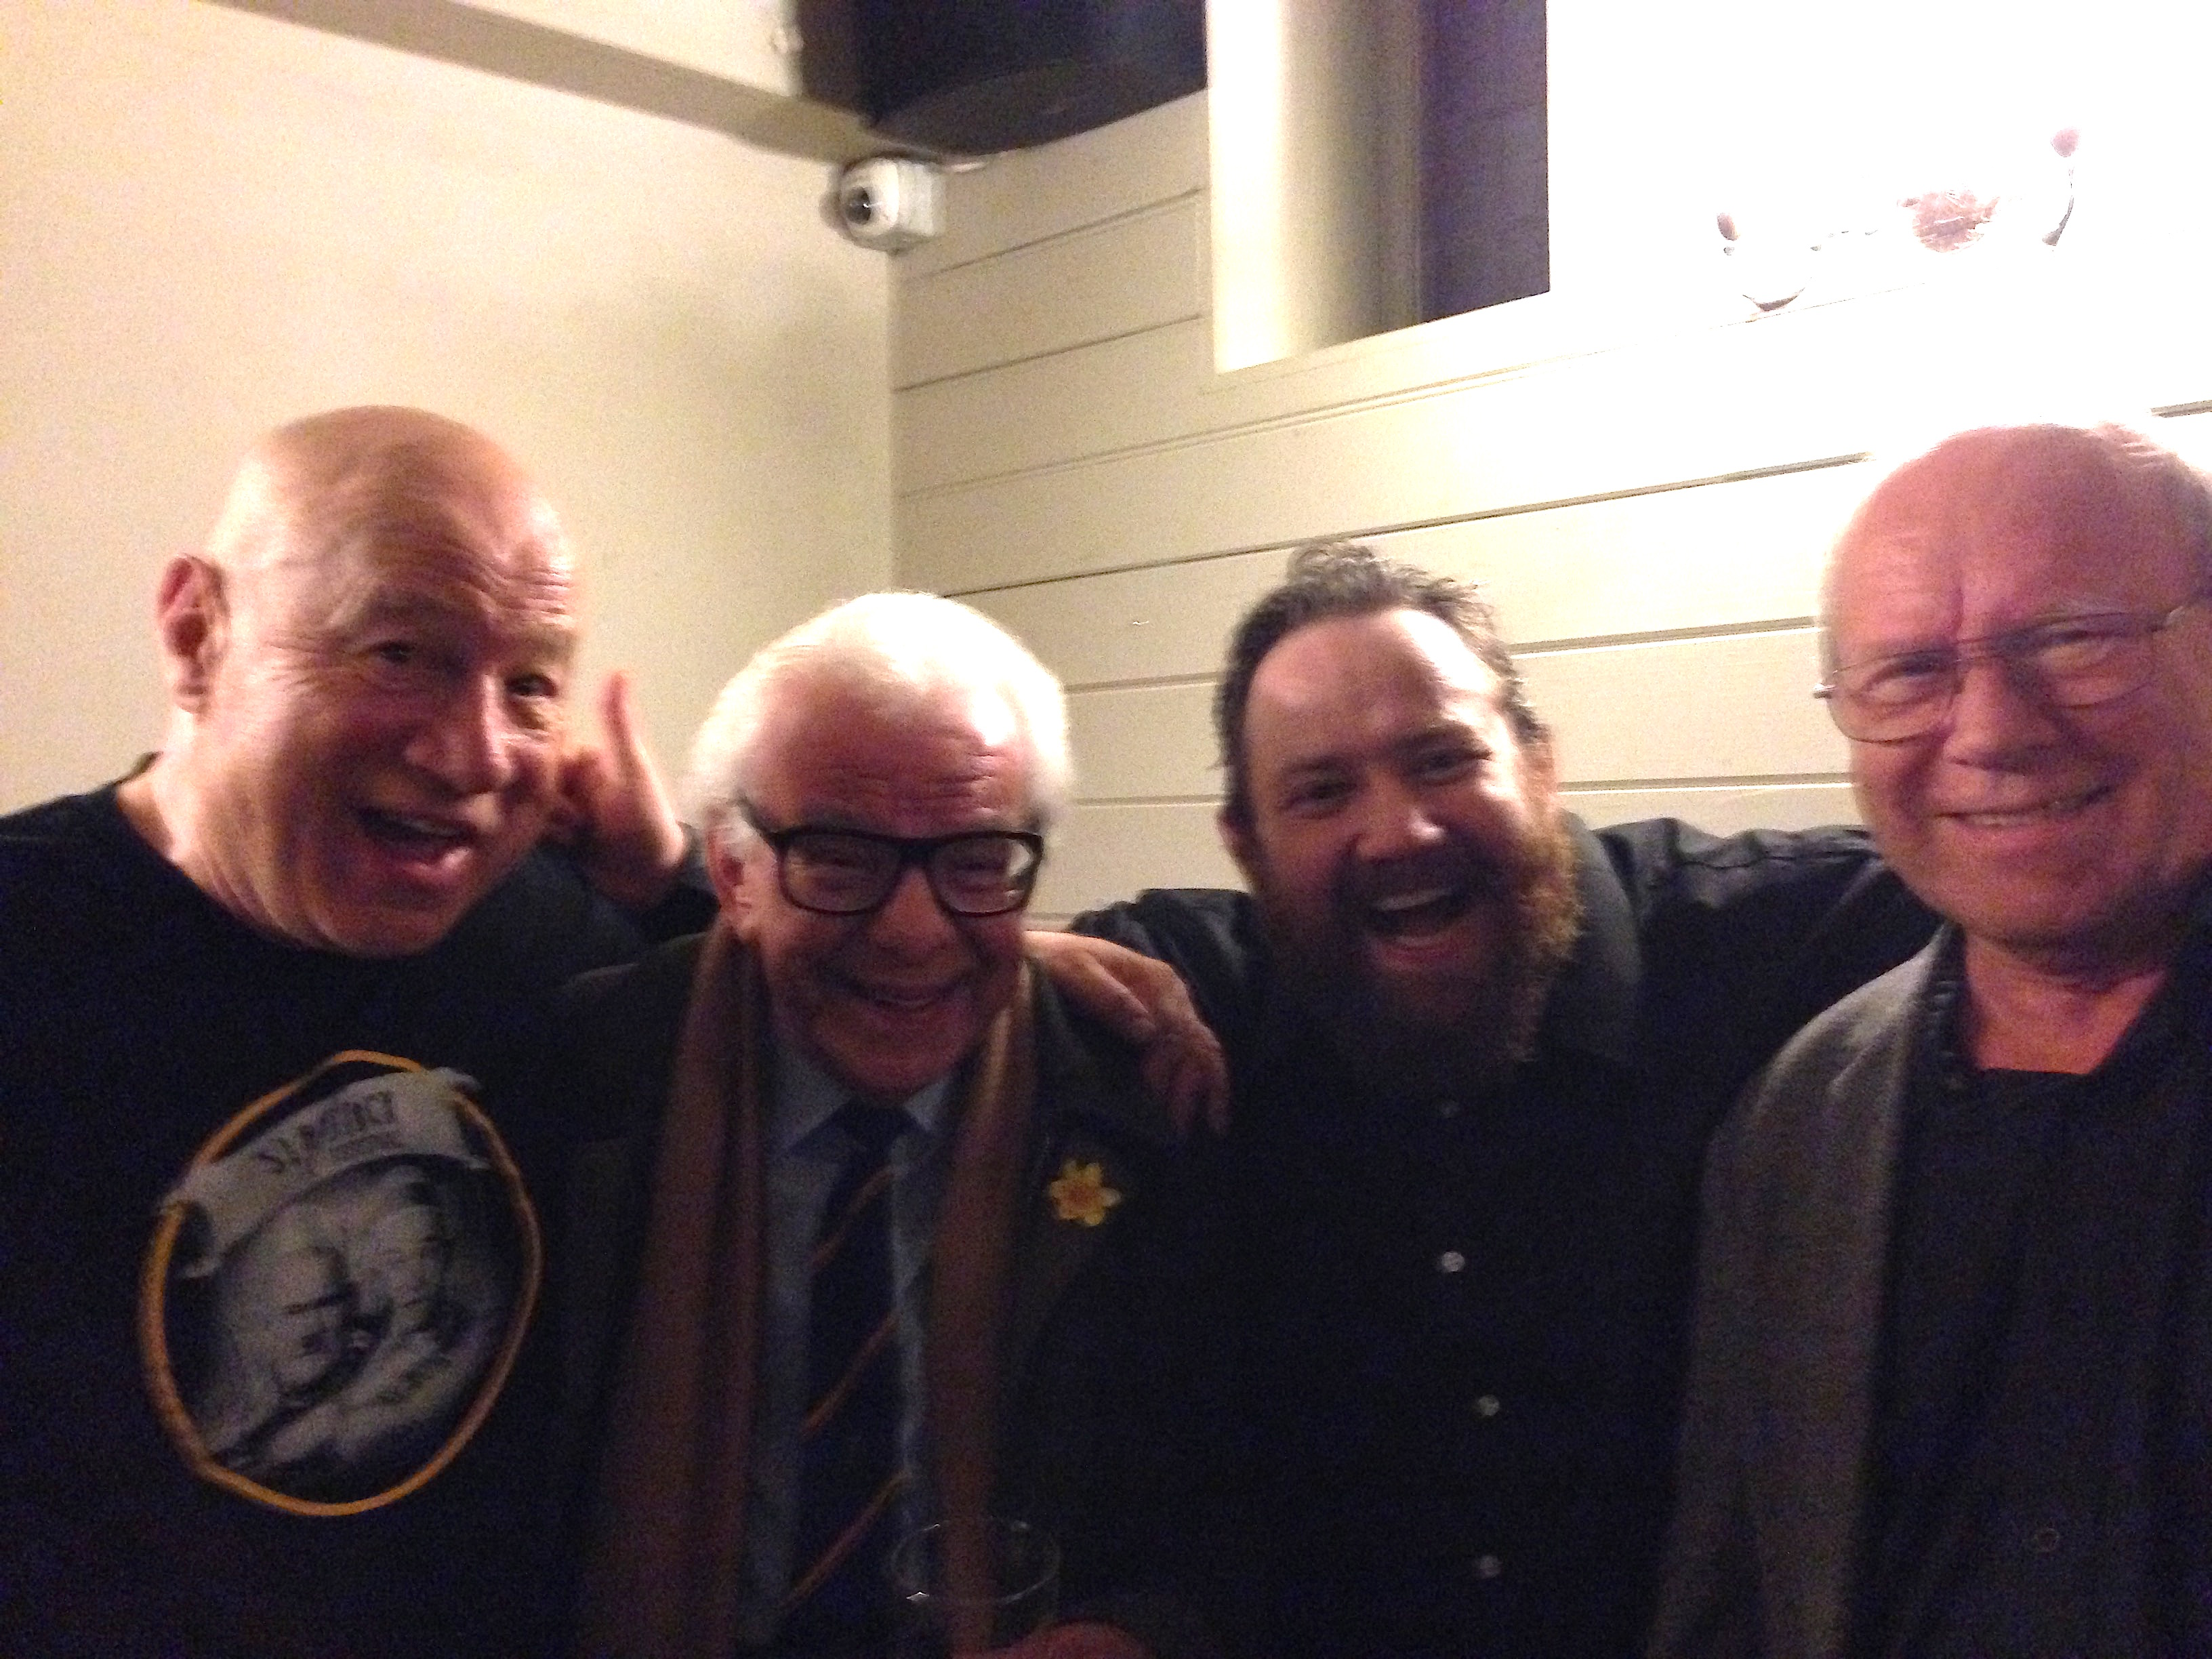 Neil Innes, Barry Cryer, me and Graeme Garden after the Bristol Old Vic show